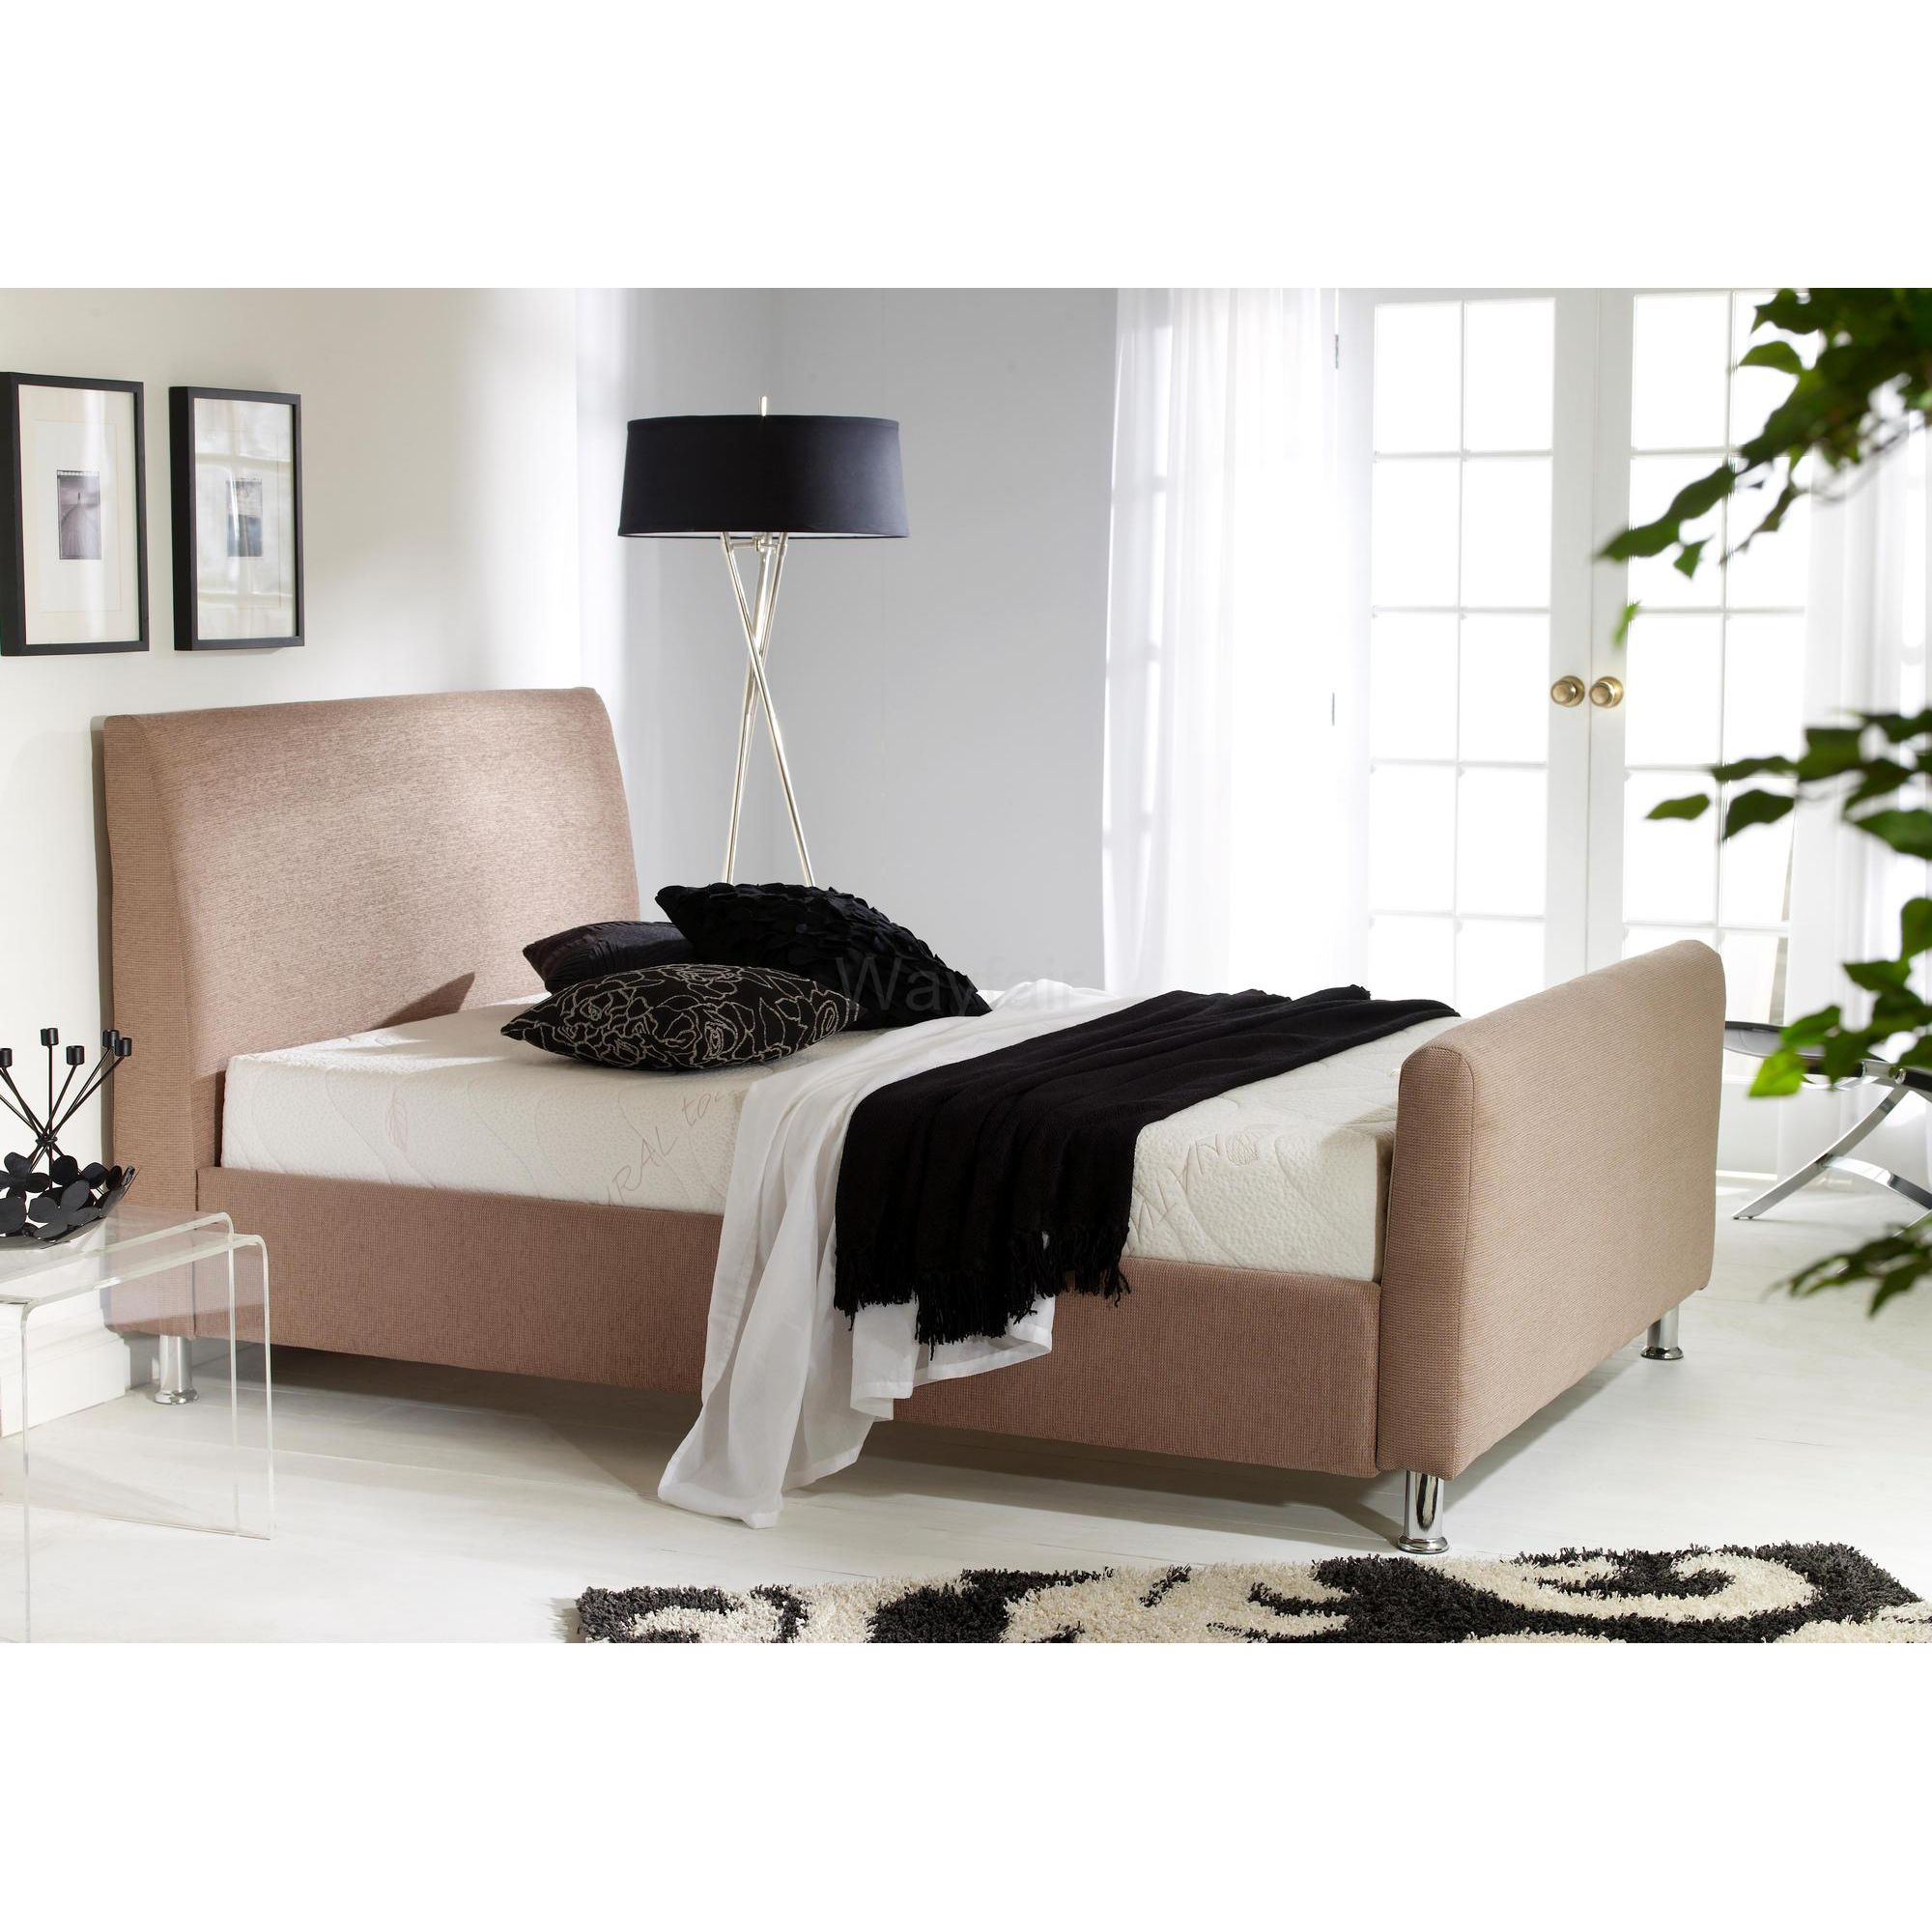 MA Living Kamli Bed - Single - faux leather Brown at Tesco Direct